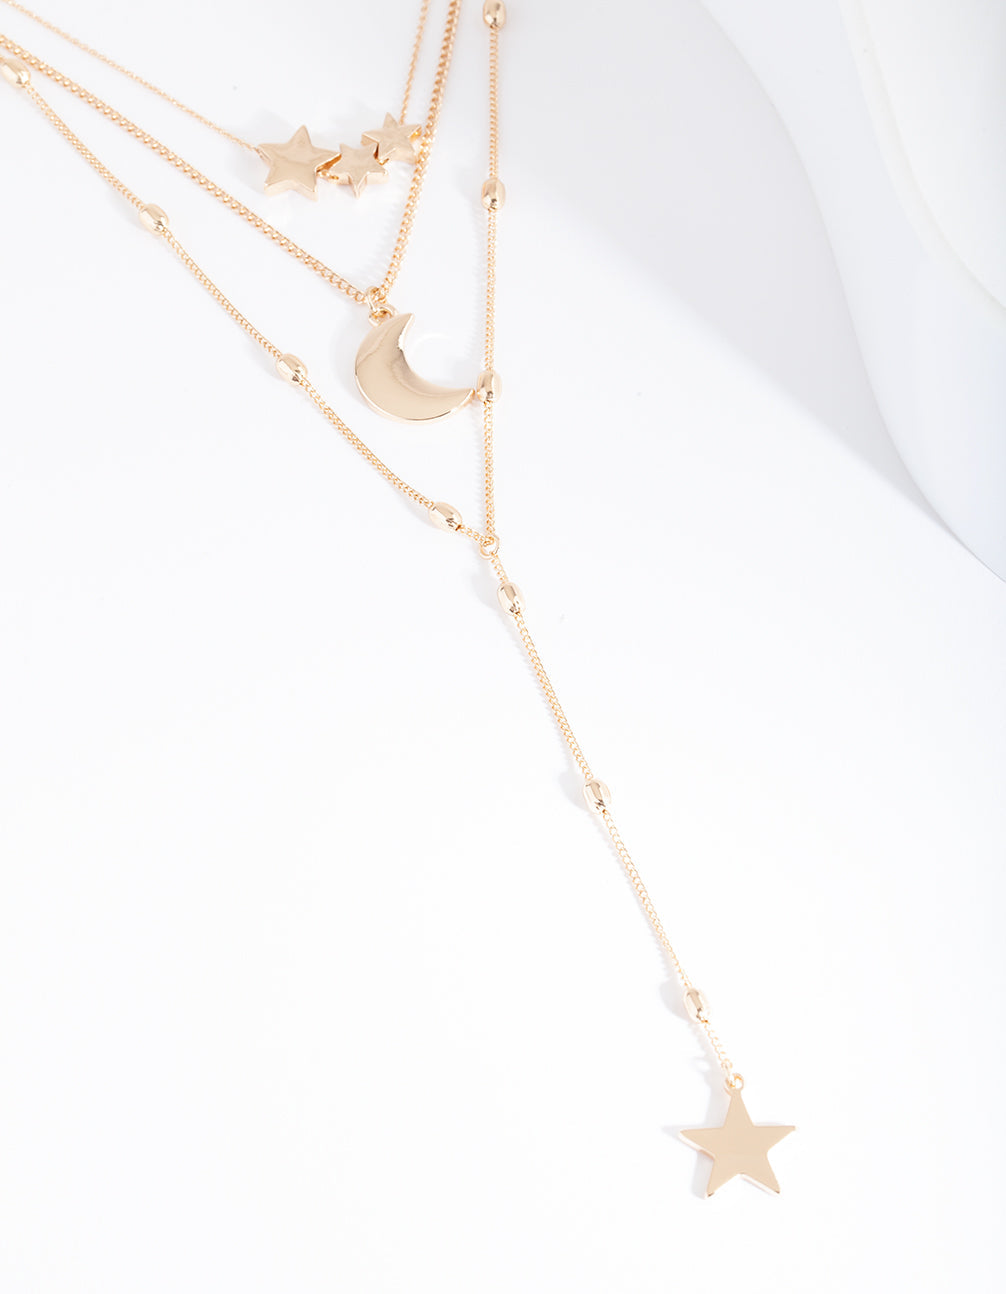 Gold Celestial Layered Necklace